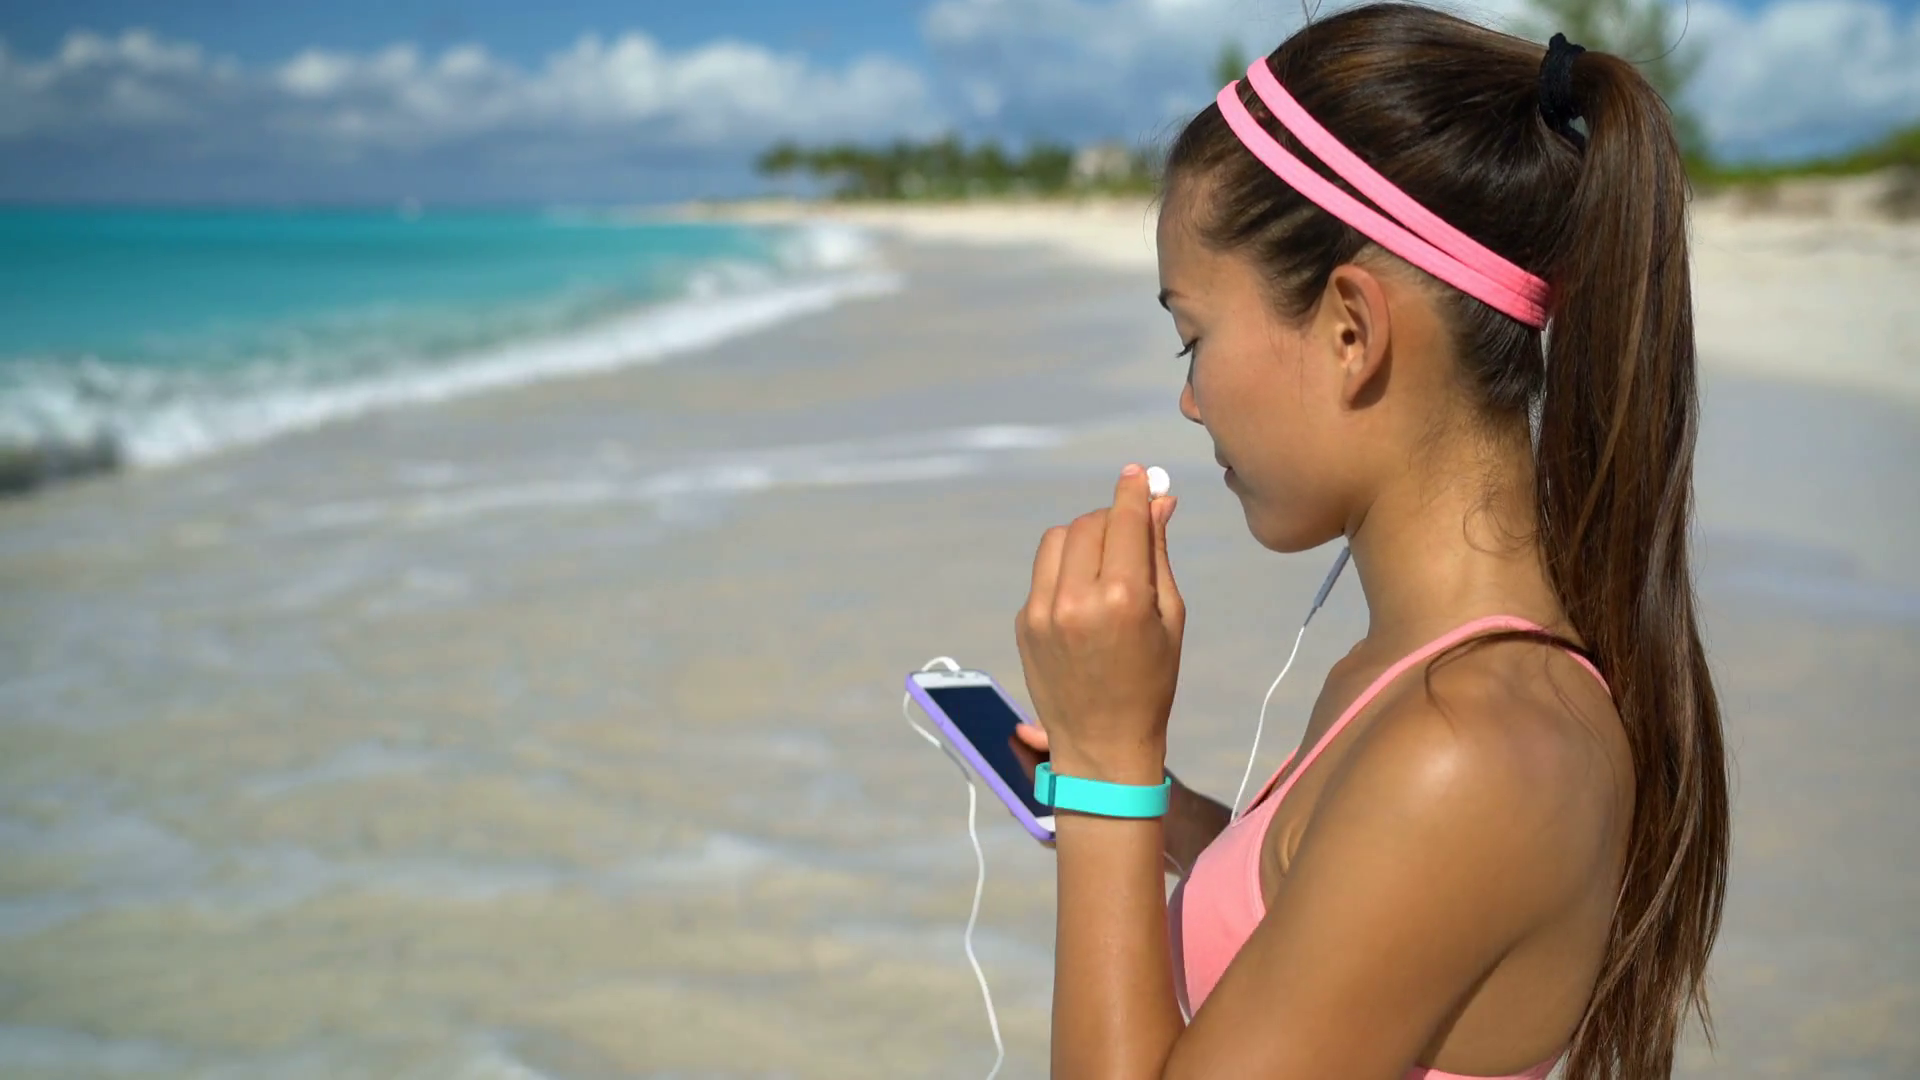 woman-listening-to-music-running-exercising-on-beach-young-woman-putting-earphones-in-ear-getting-ready-to-run-on-sea-shore-female-fitness-girl-training-listening-music-while-jogging-on-sunny-day_hz0ah_-fx_thumbnai